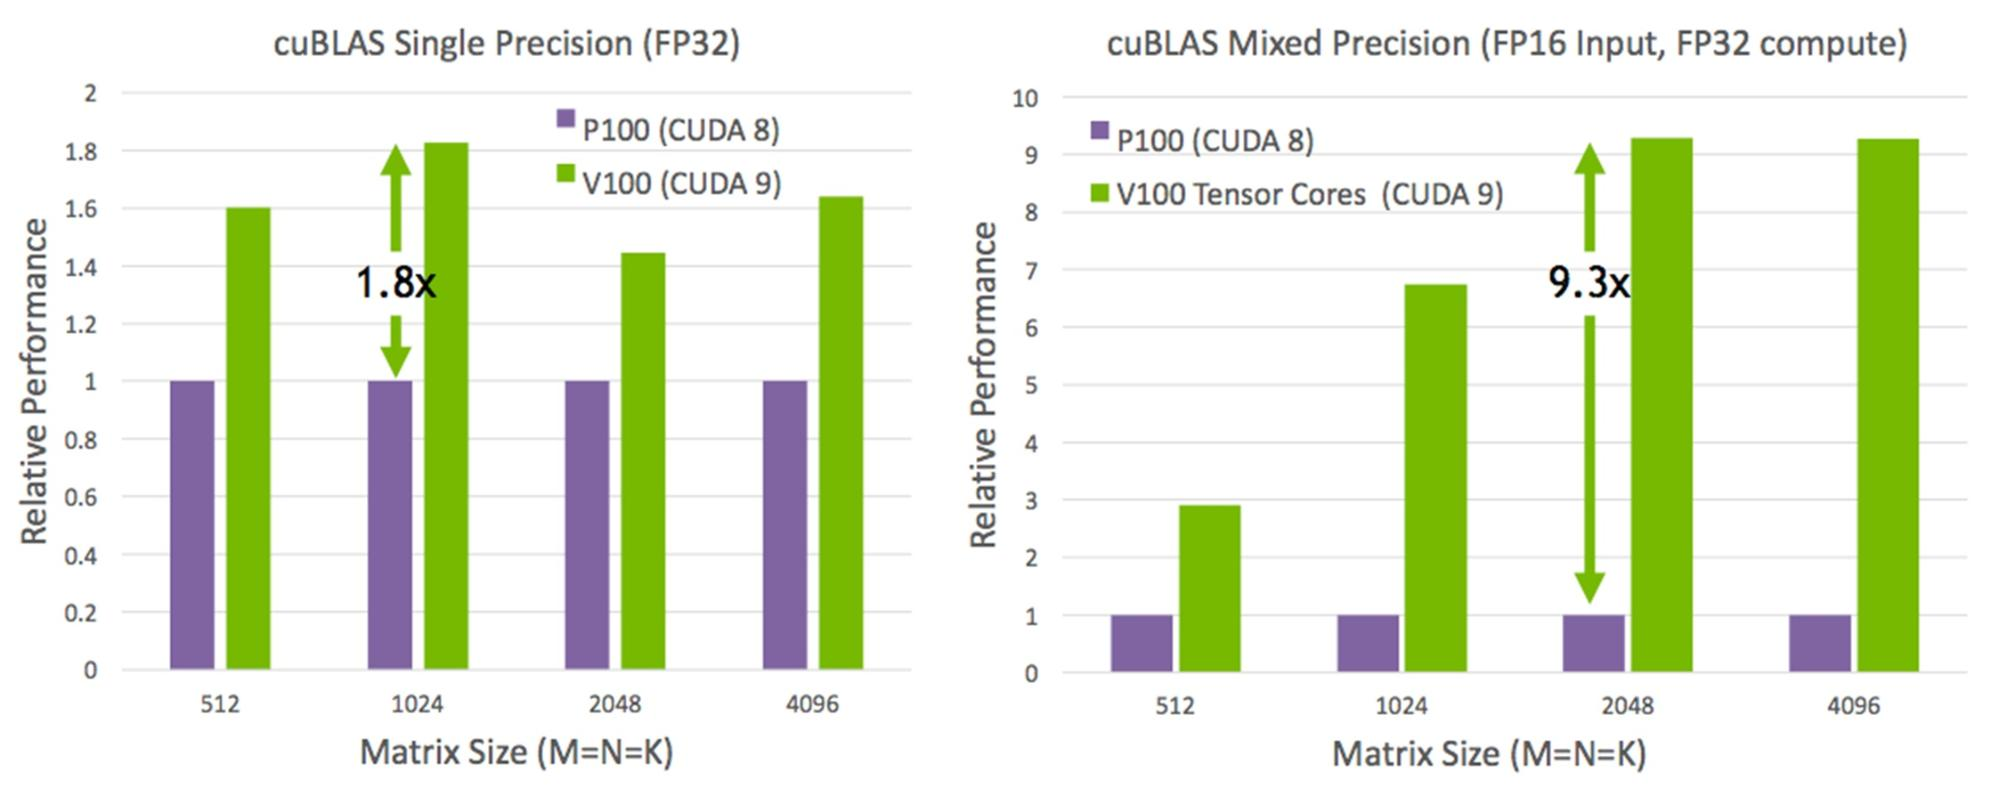 Figure 3: cuBLAS SGEMM (FP32 matrix-matrix multiply) and mixed-precision GEMM (FP16 inputs and FP32 computation) get a massive performance boost from the new Tesla V100 accelerator.